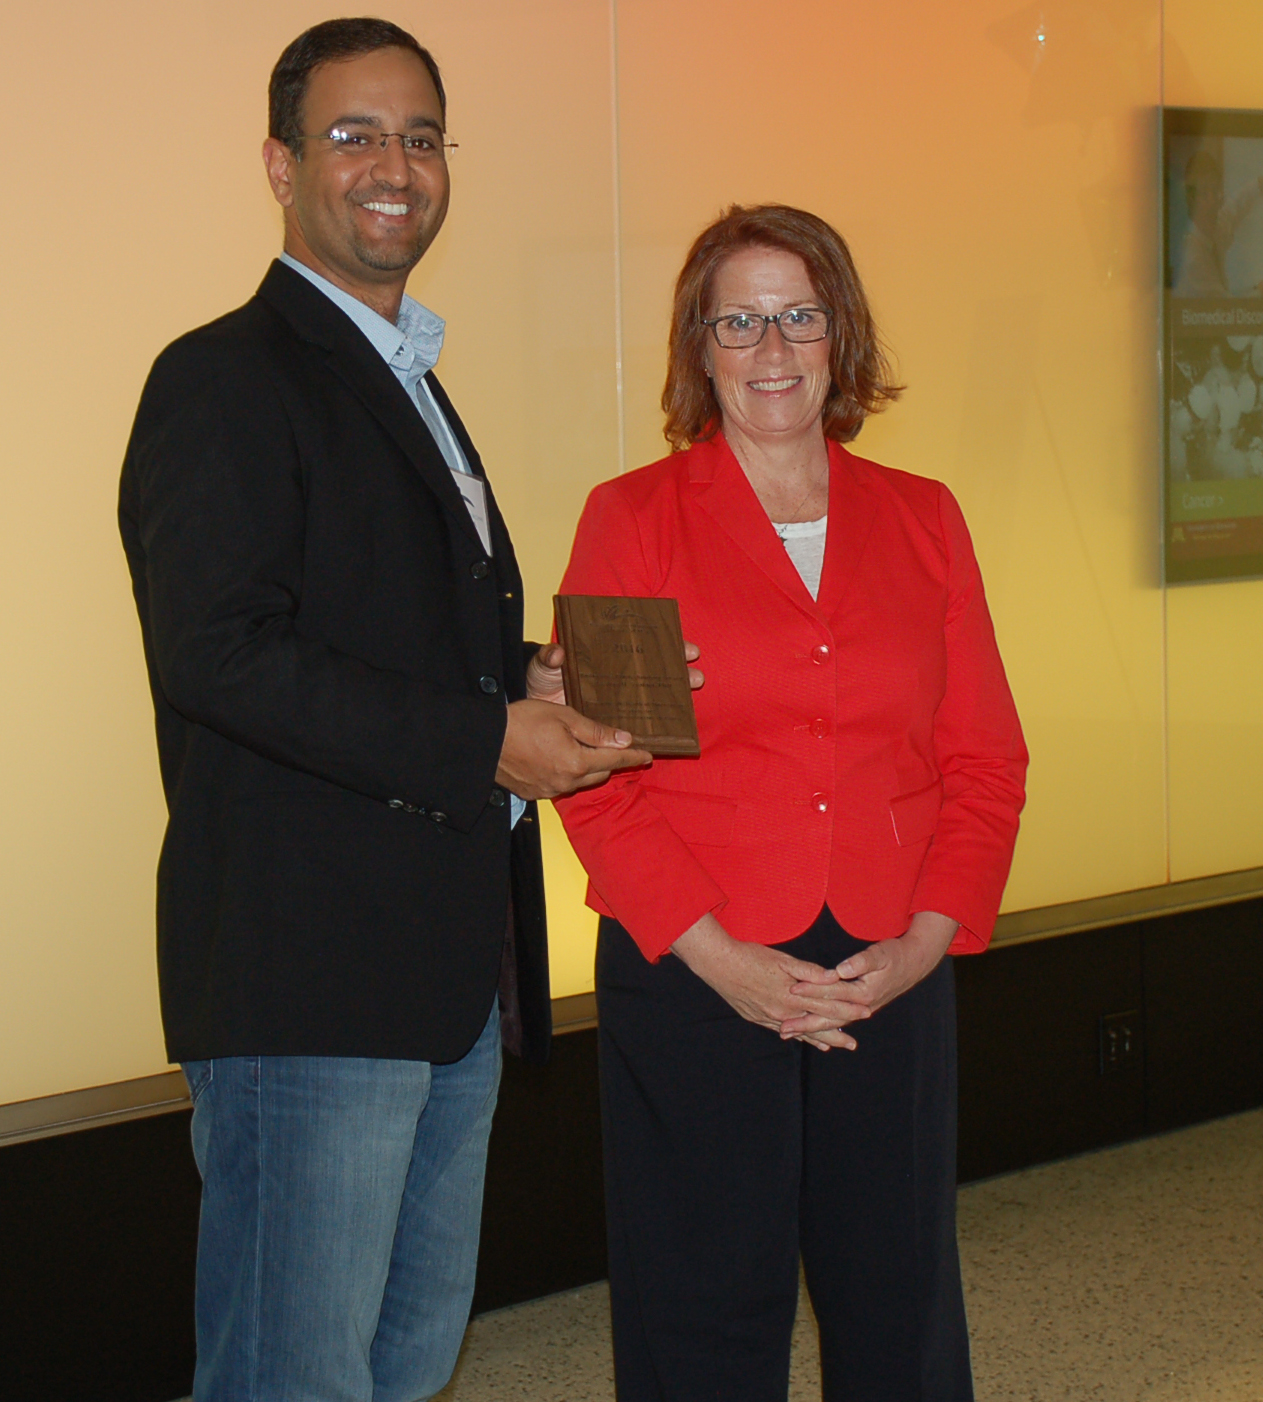 Dr. Zeeshan Syedain, seen here with Rep. Erin Murphy, received a Biobusiness/Biotechnology grant to develop a way to culture living, growing arterial grafts for children who currently require multiple open-heart surgeries when they outgrow their artificial grafts.